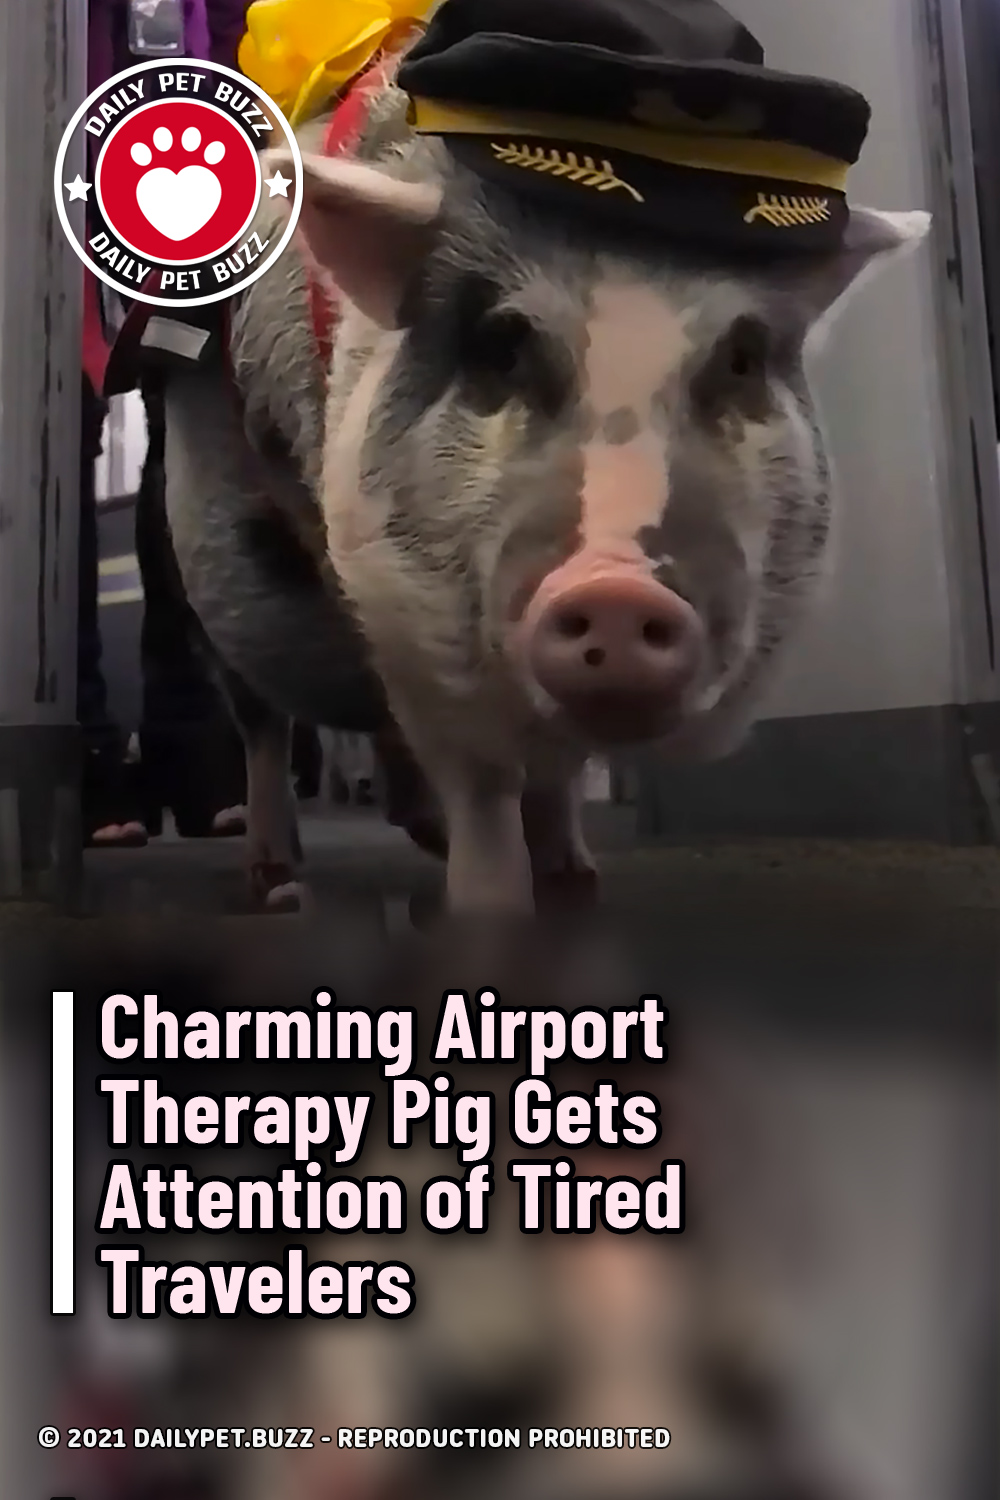 Charming Airport Therapy Pig Gets Attention of Tired Travelers